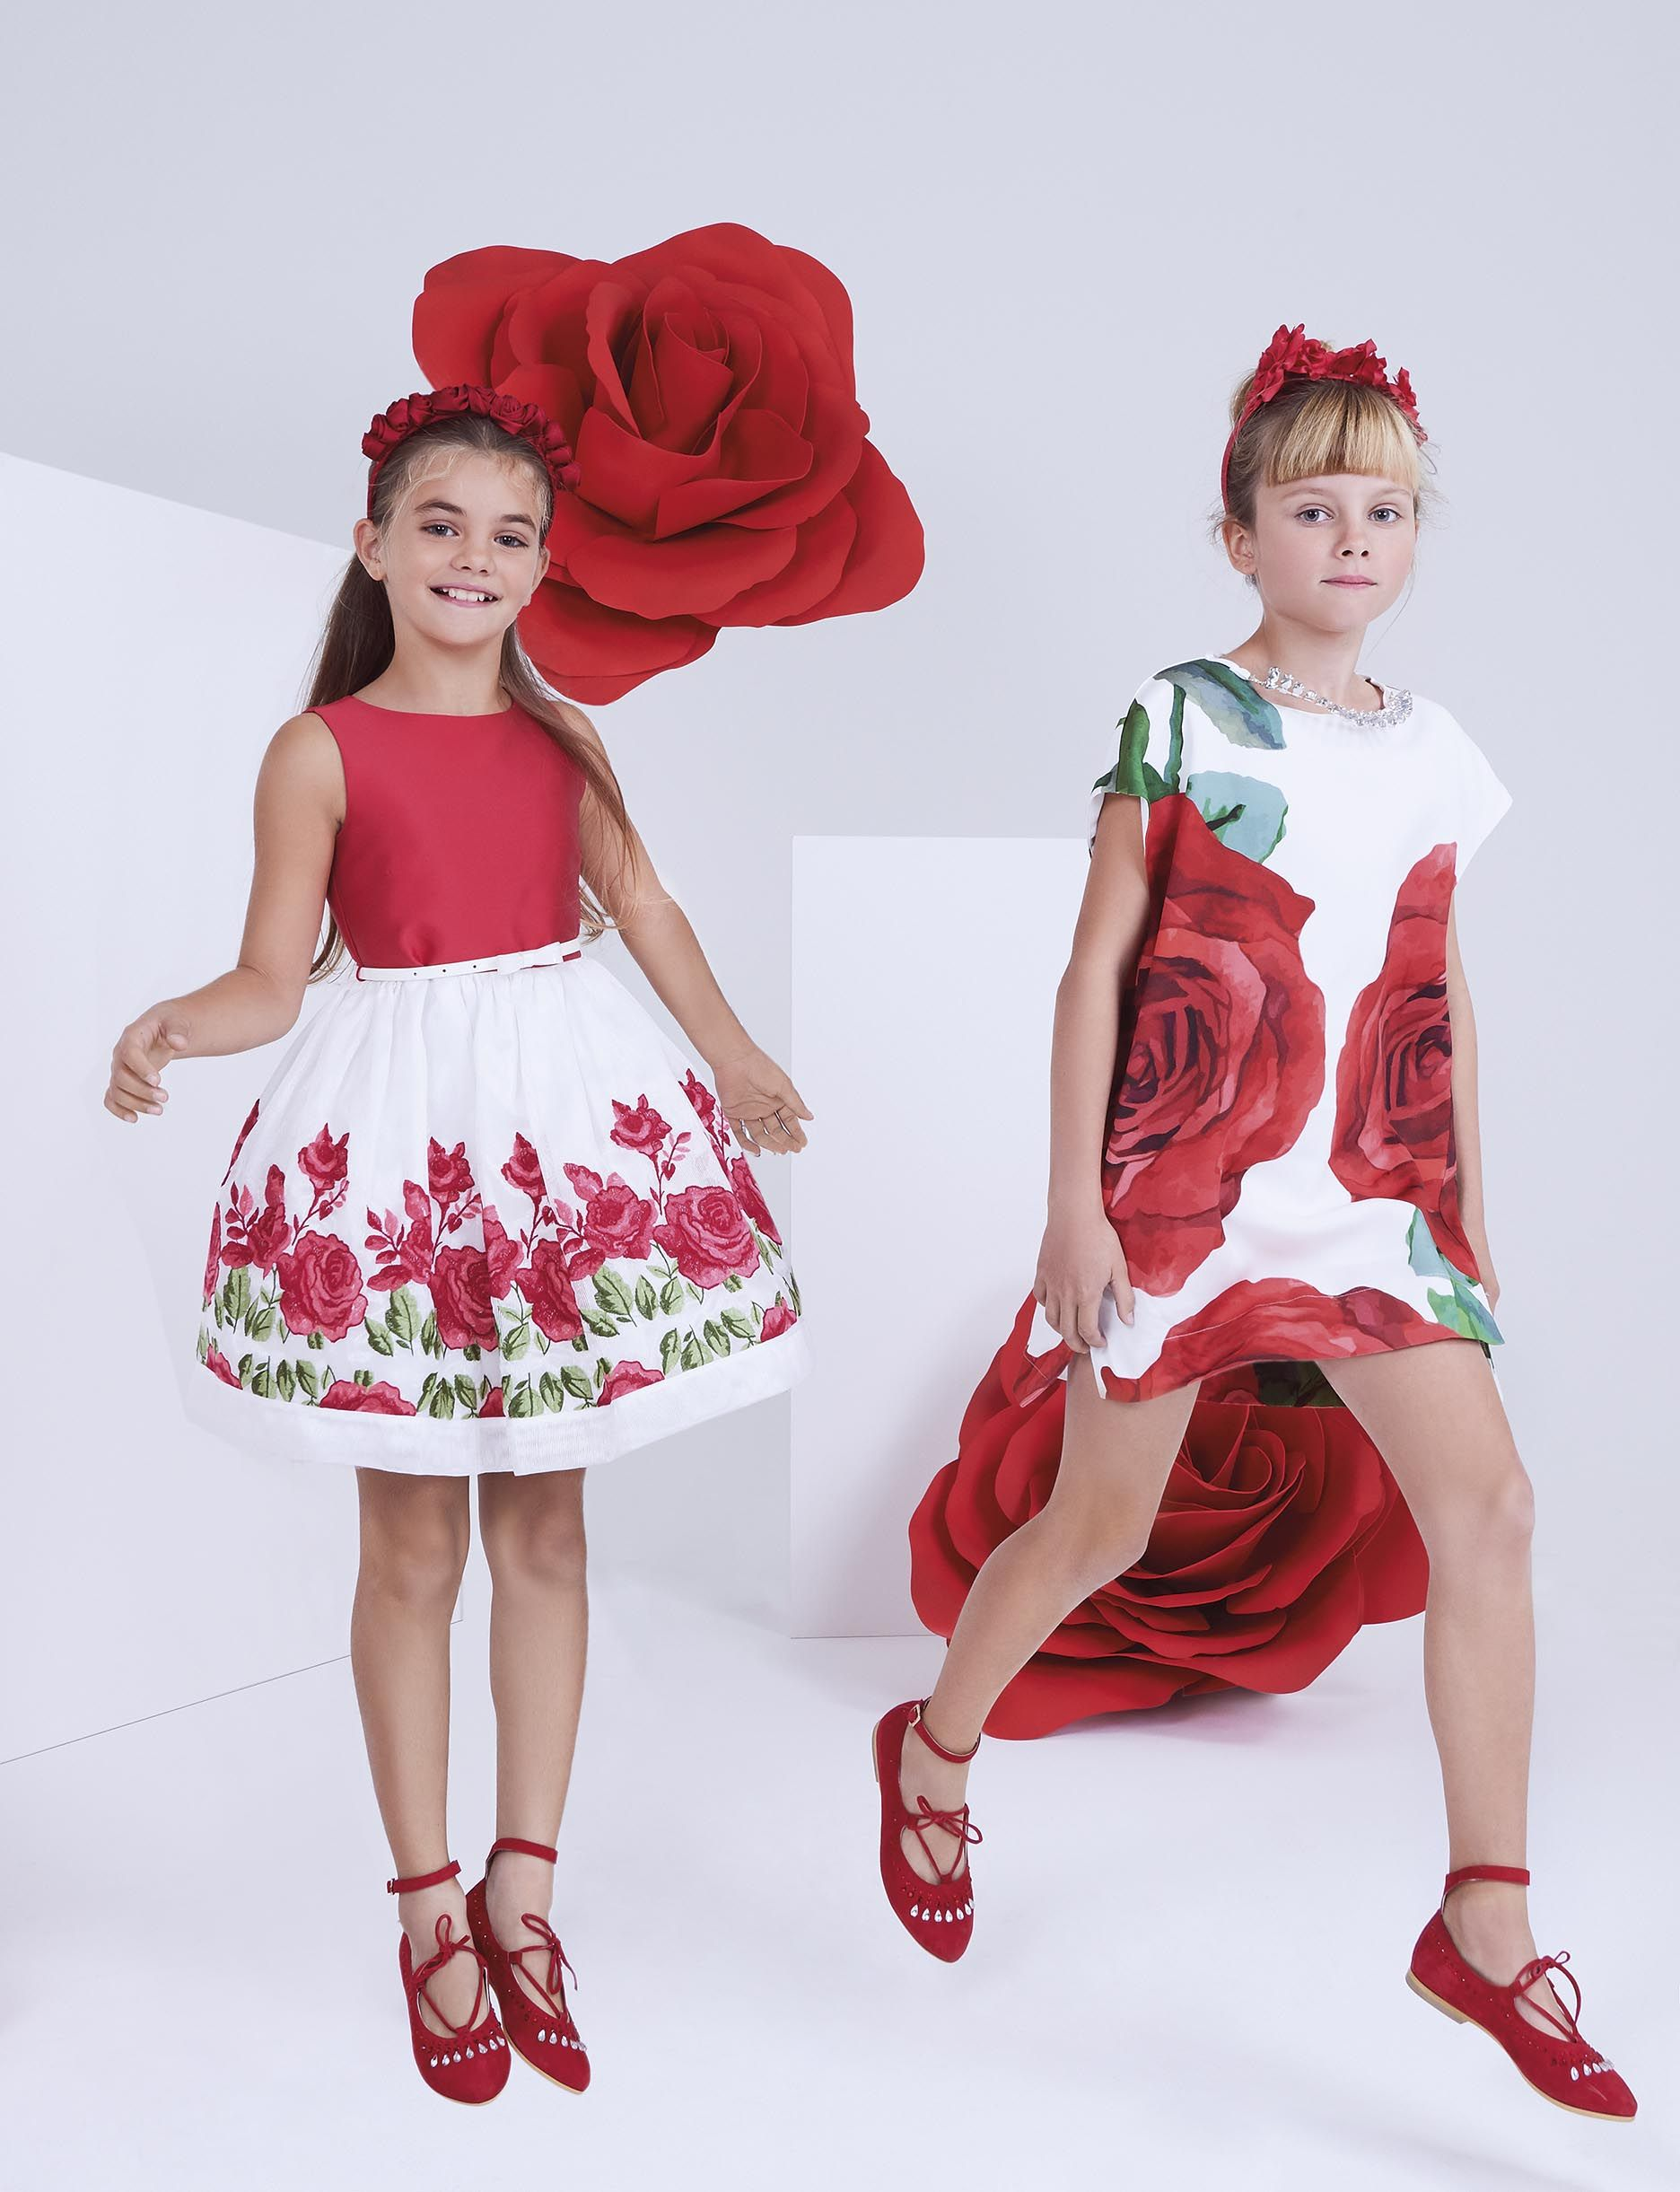 MONNALISA CHIC Spring Summer 2017  Monnalisa  fashion  kids  childrenswear   newcollection  girl  style  summer  hairband  bag  ceremony  redroses  rose 323d44145ee